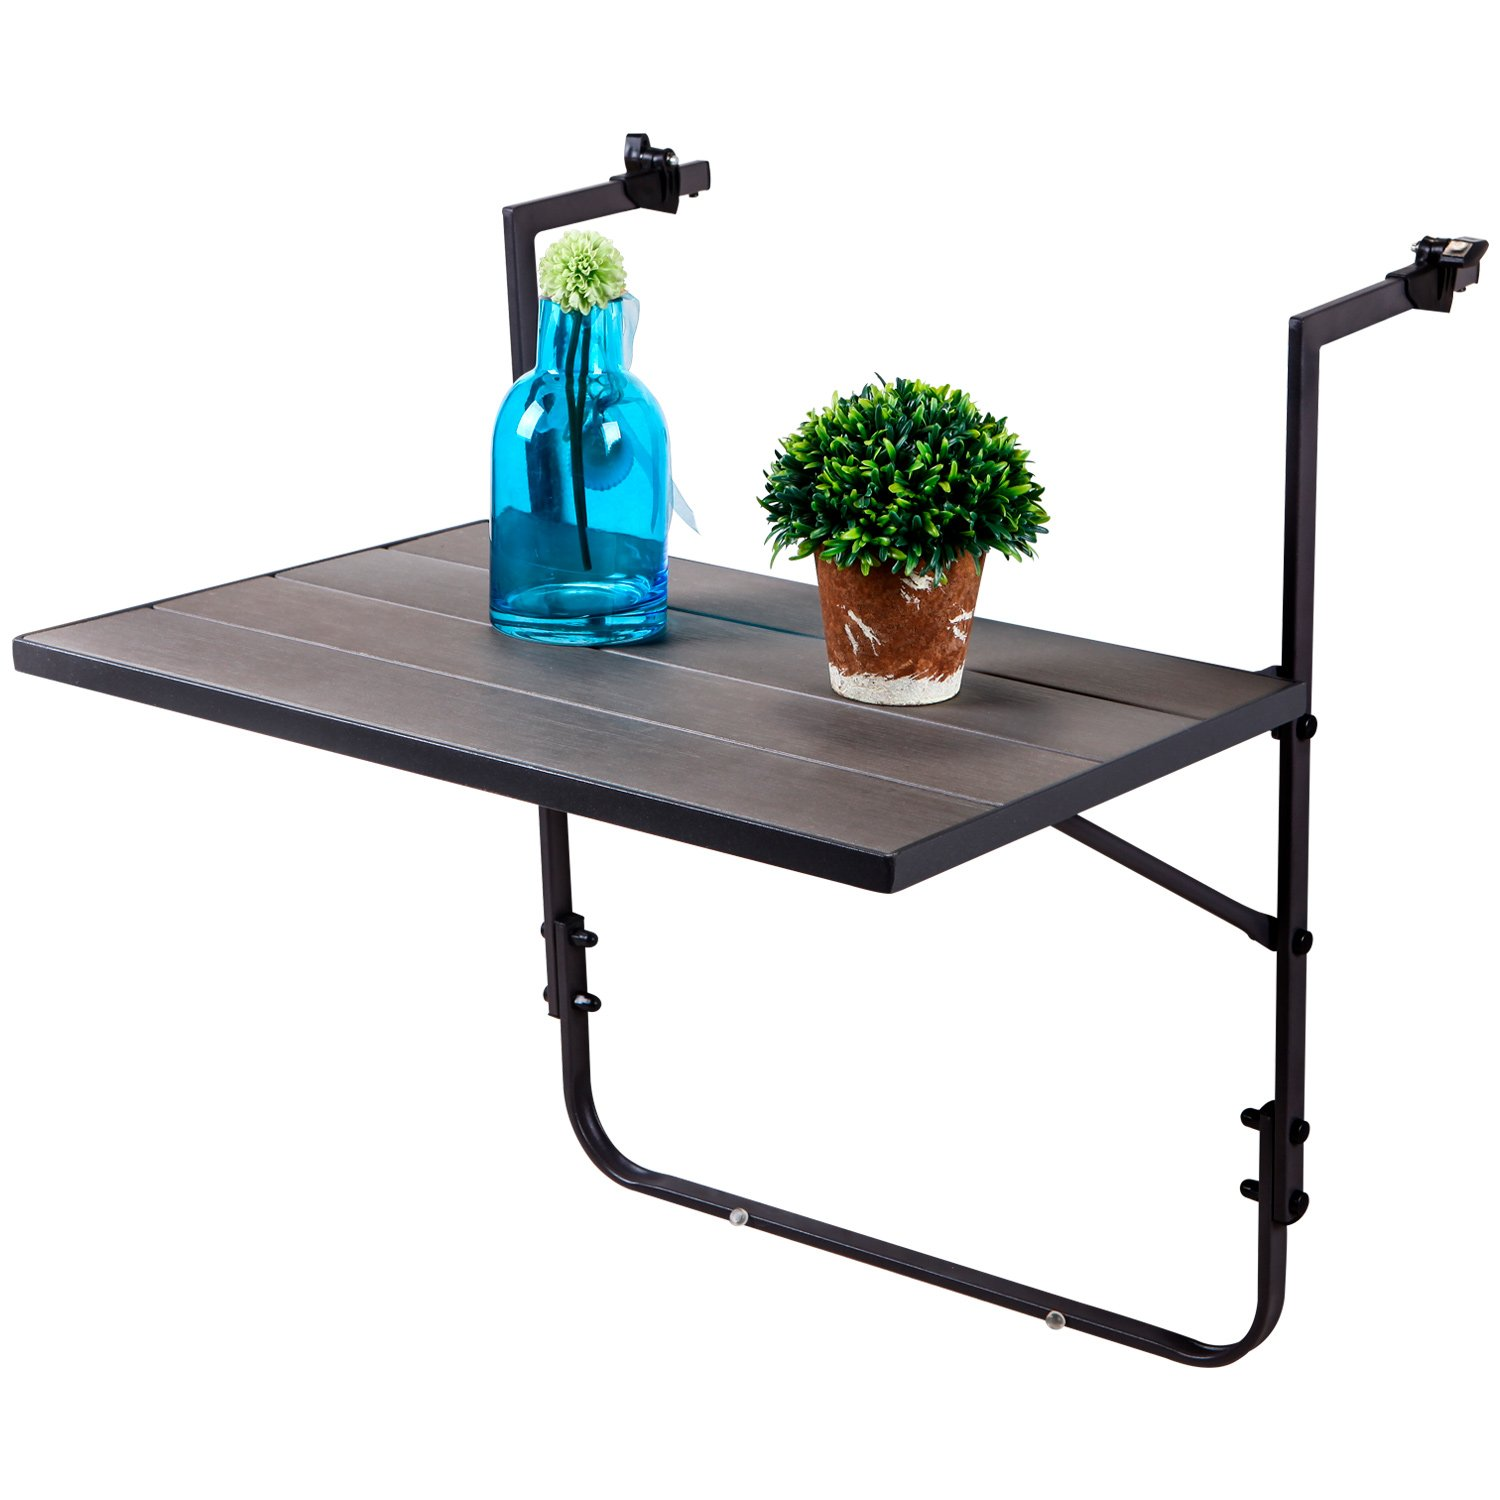 LCH Outdoor Balcony Table Folding Deck Table Steel Frame Patio Stand Hanging Railing Serving Table Adjustable for Garden Porch, Black